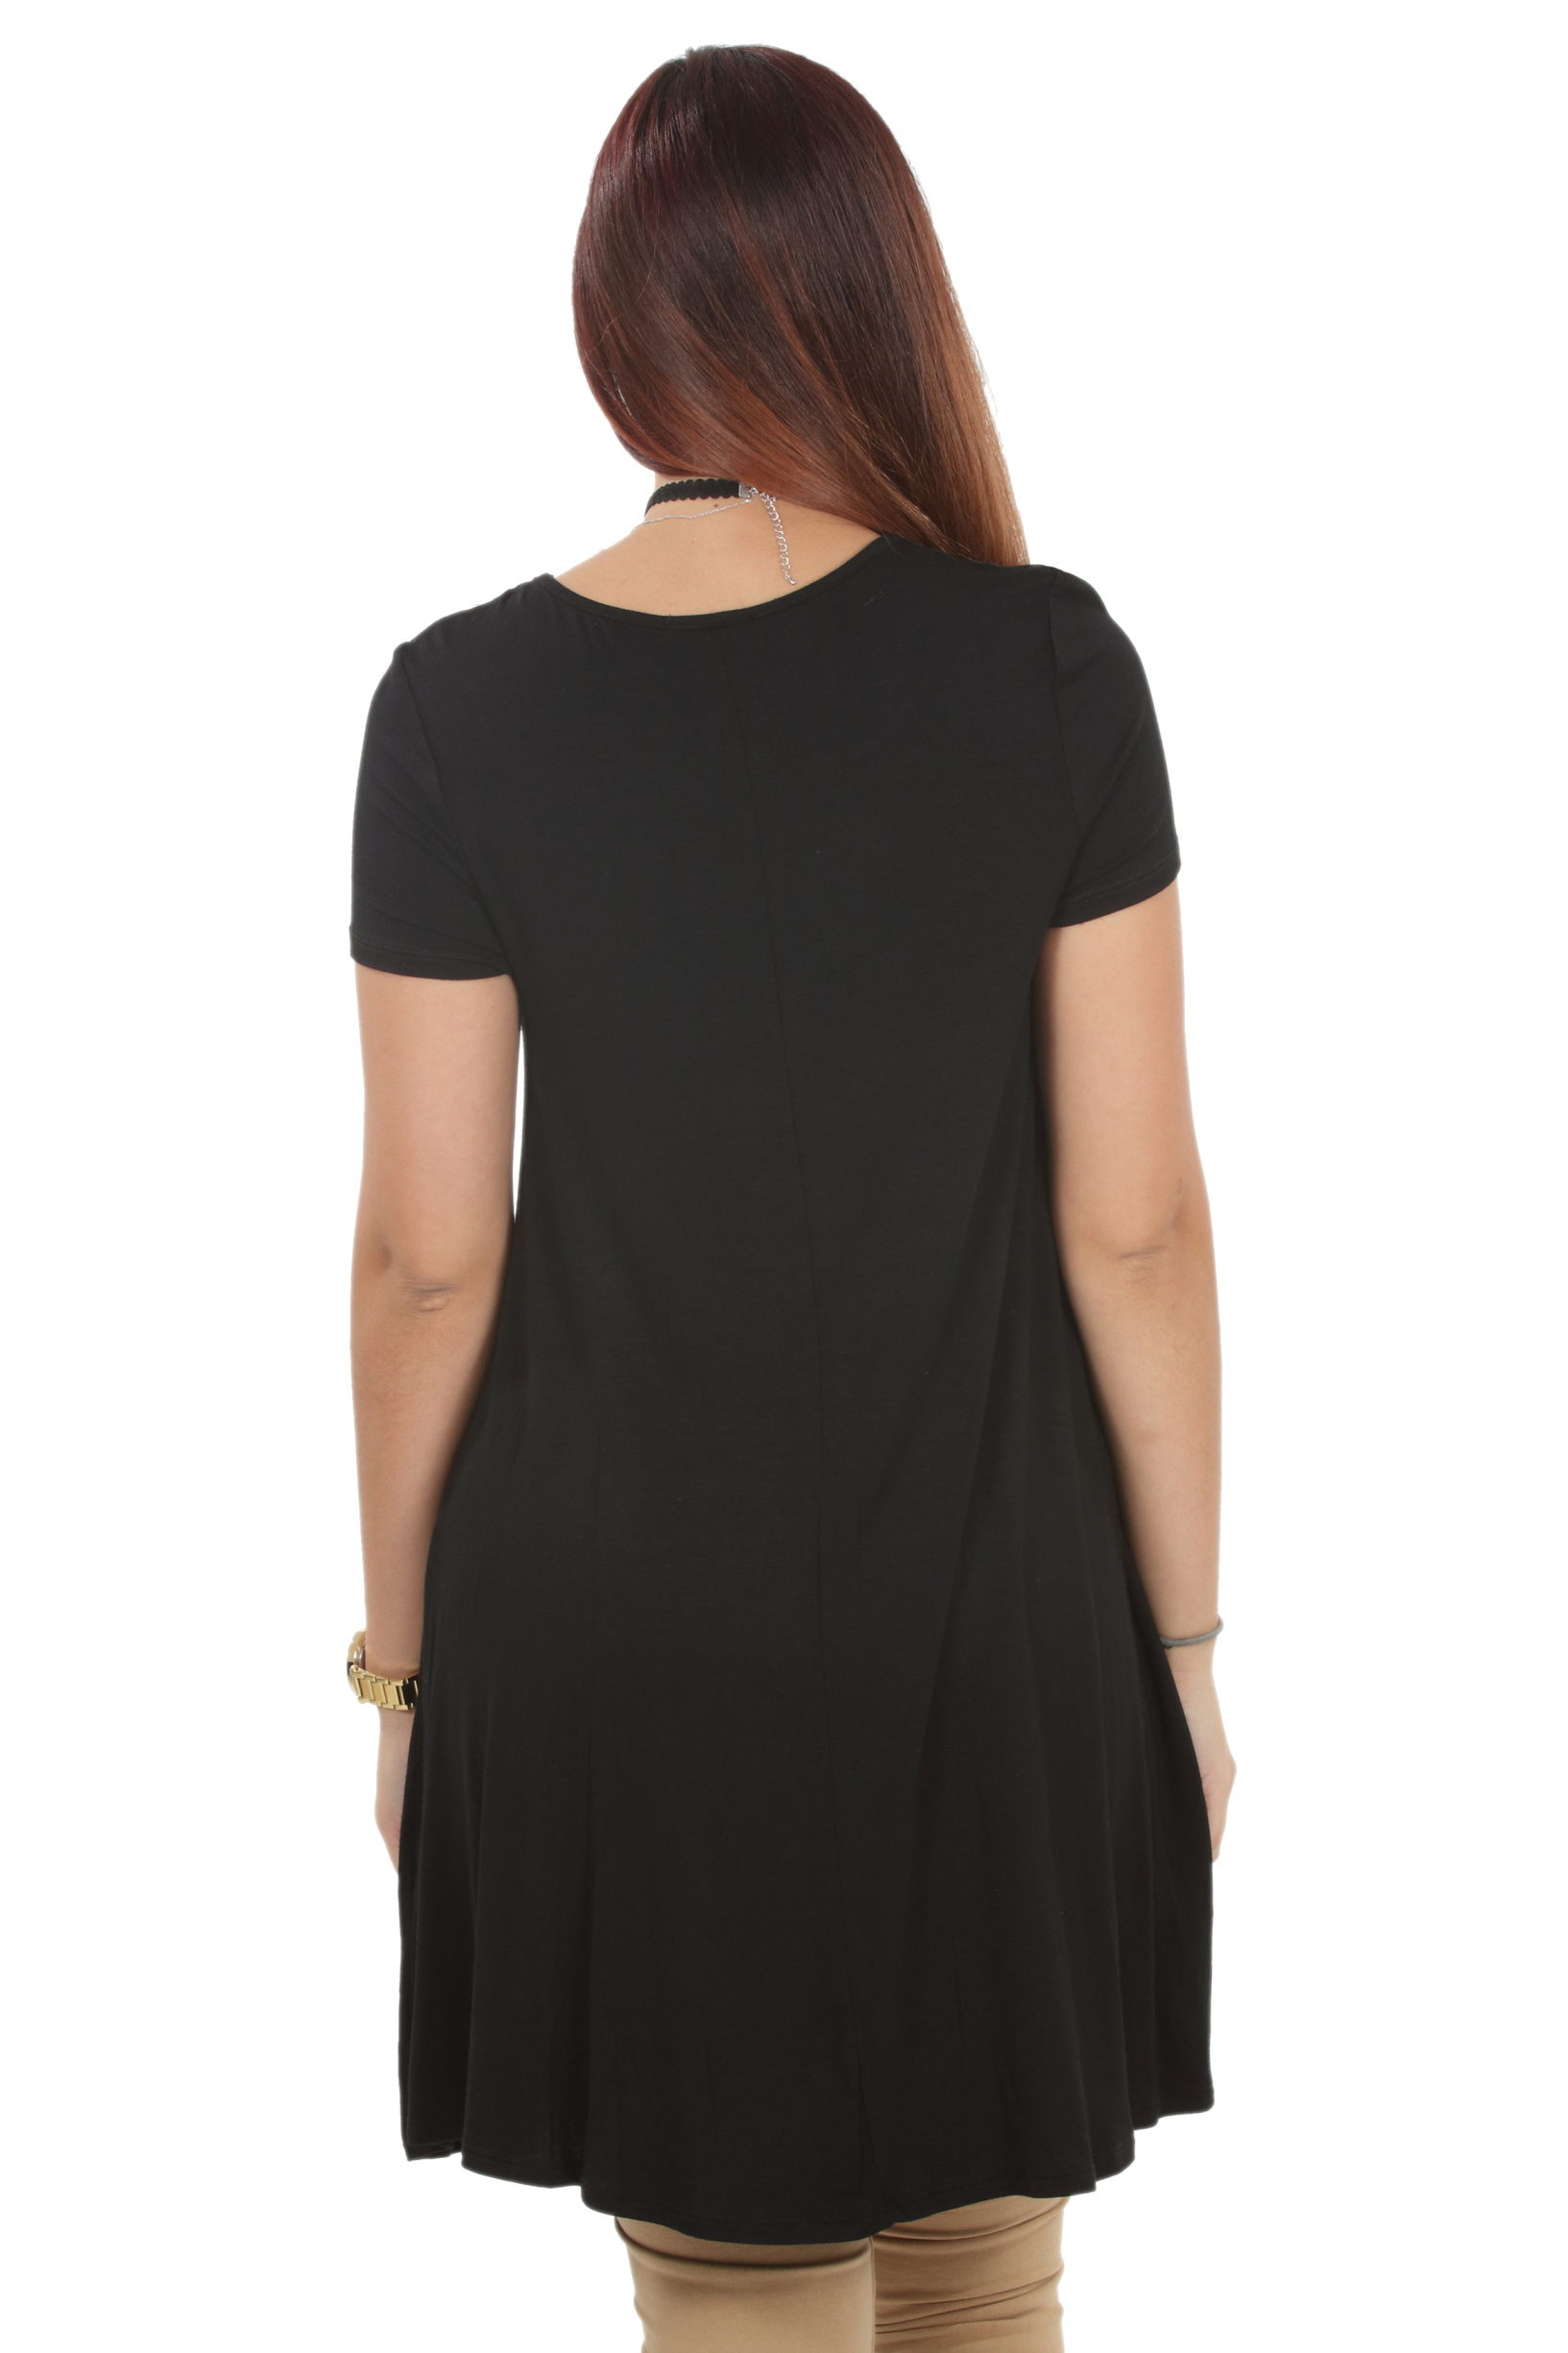 RS1043-Women-039-s-Short-Sleeve-Flare-Hem-Loose-Fit-Round-Neck-Dress-Tunic-Top thumbnail 10